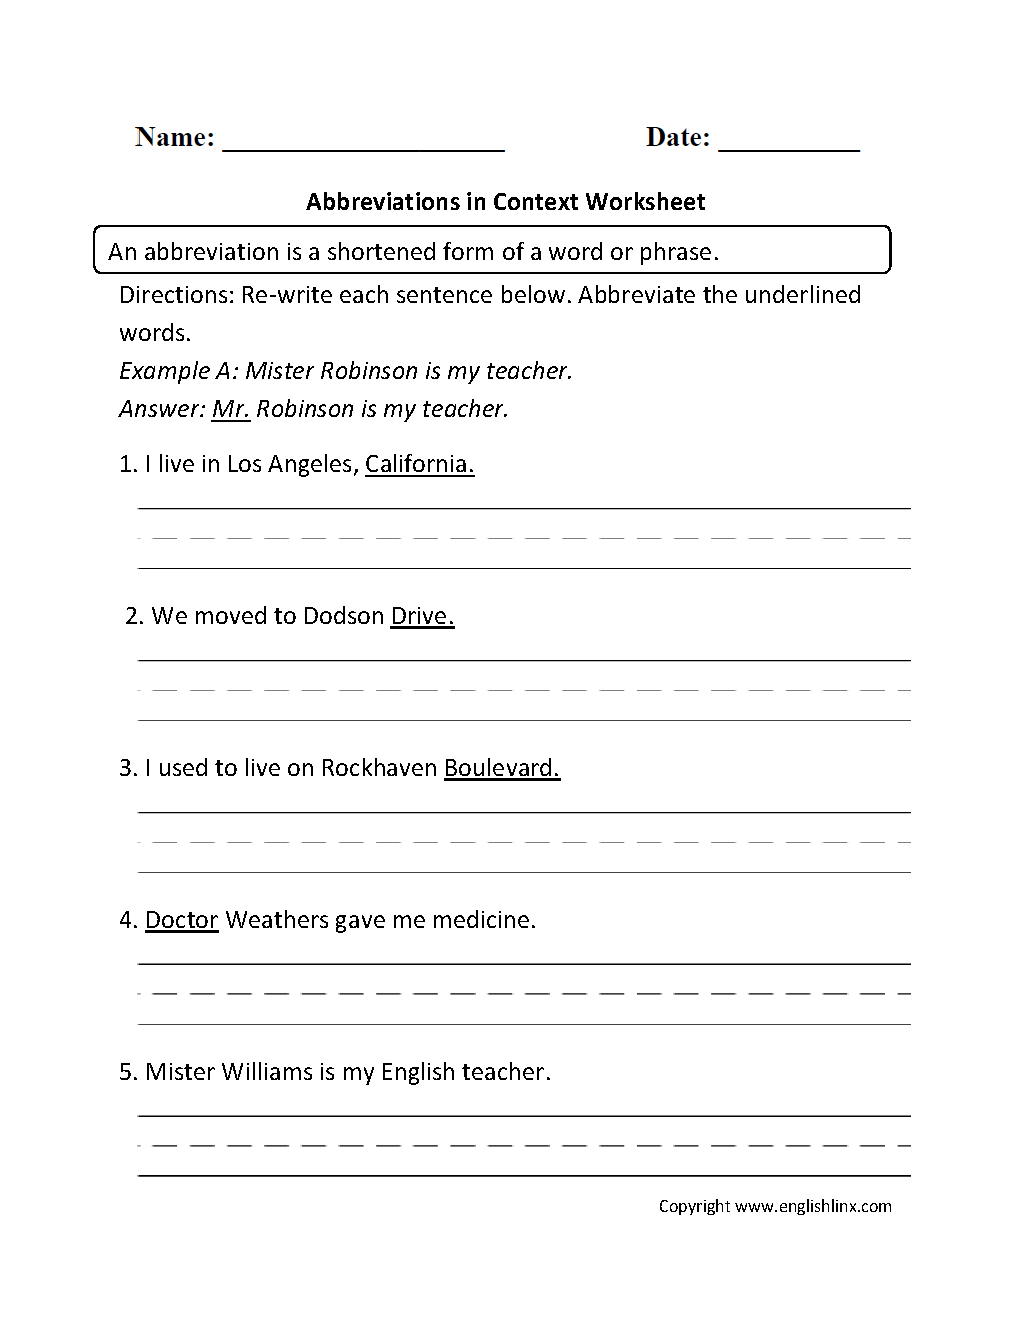 worksheet Abbreviations Worksheets englishlinx com abbreviations worksheets in context worksheet